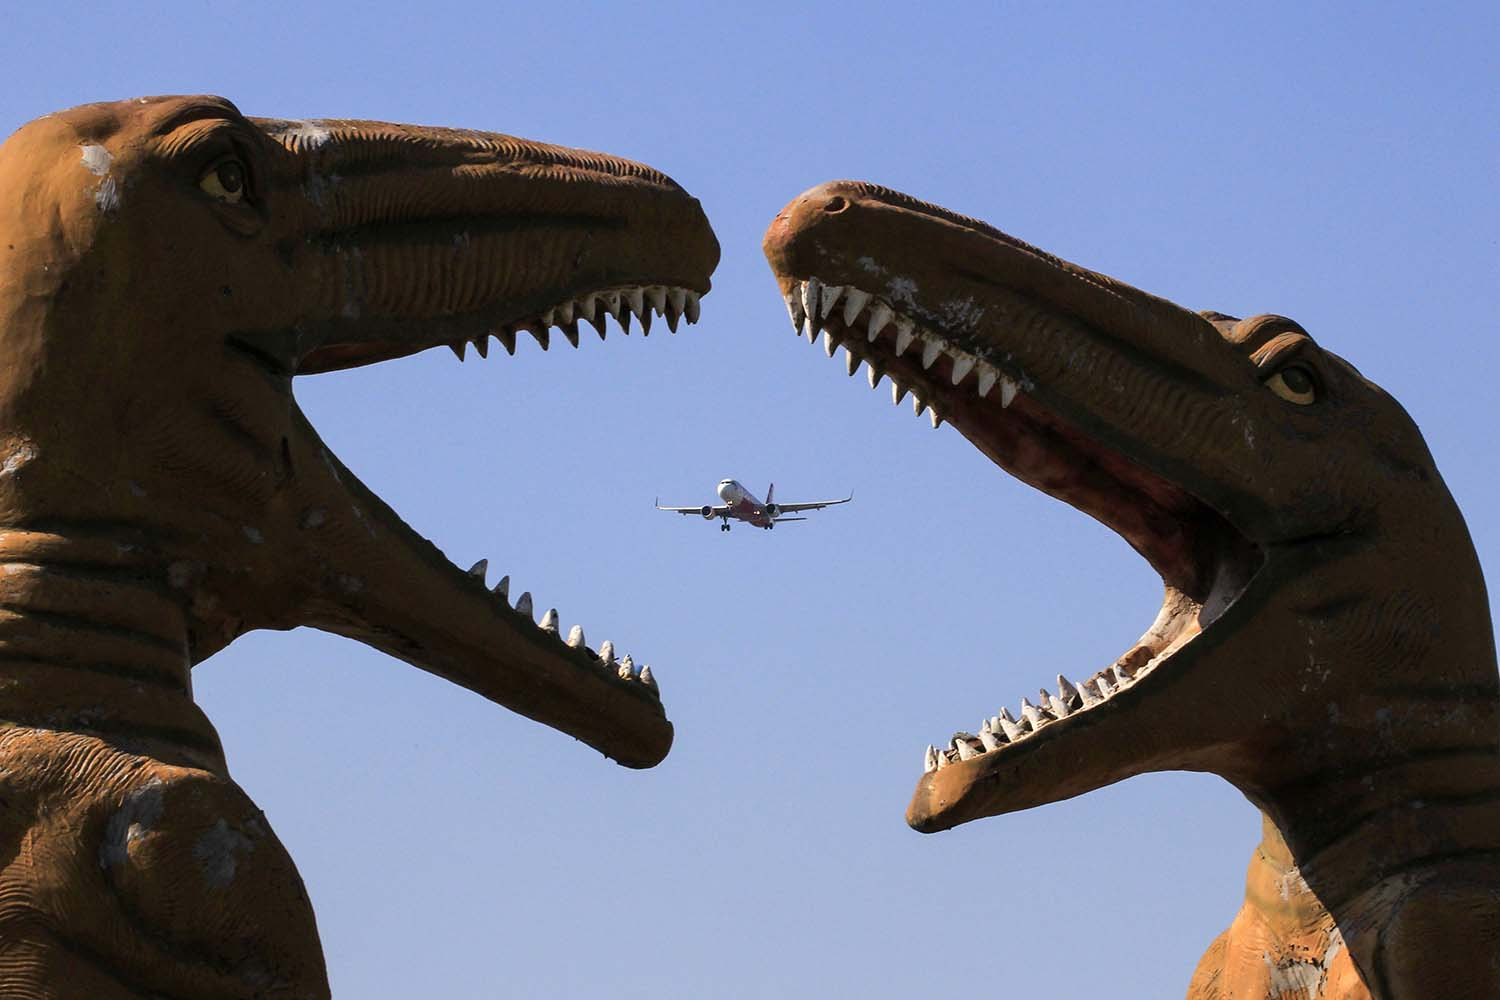 A plane flies past sculptures of dinosaurs at the Valley of Animals park in Chandigarh, India, on Nov. 9. VIJAY MATHUR/AFP via Getty Images